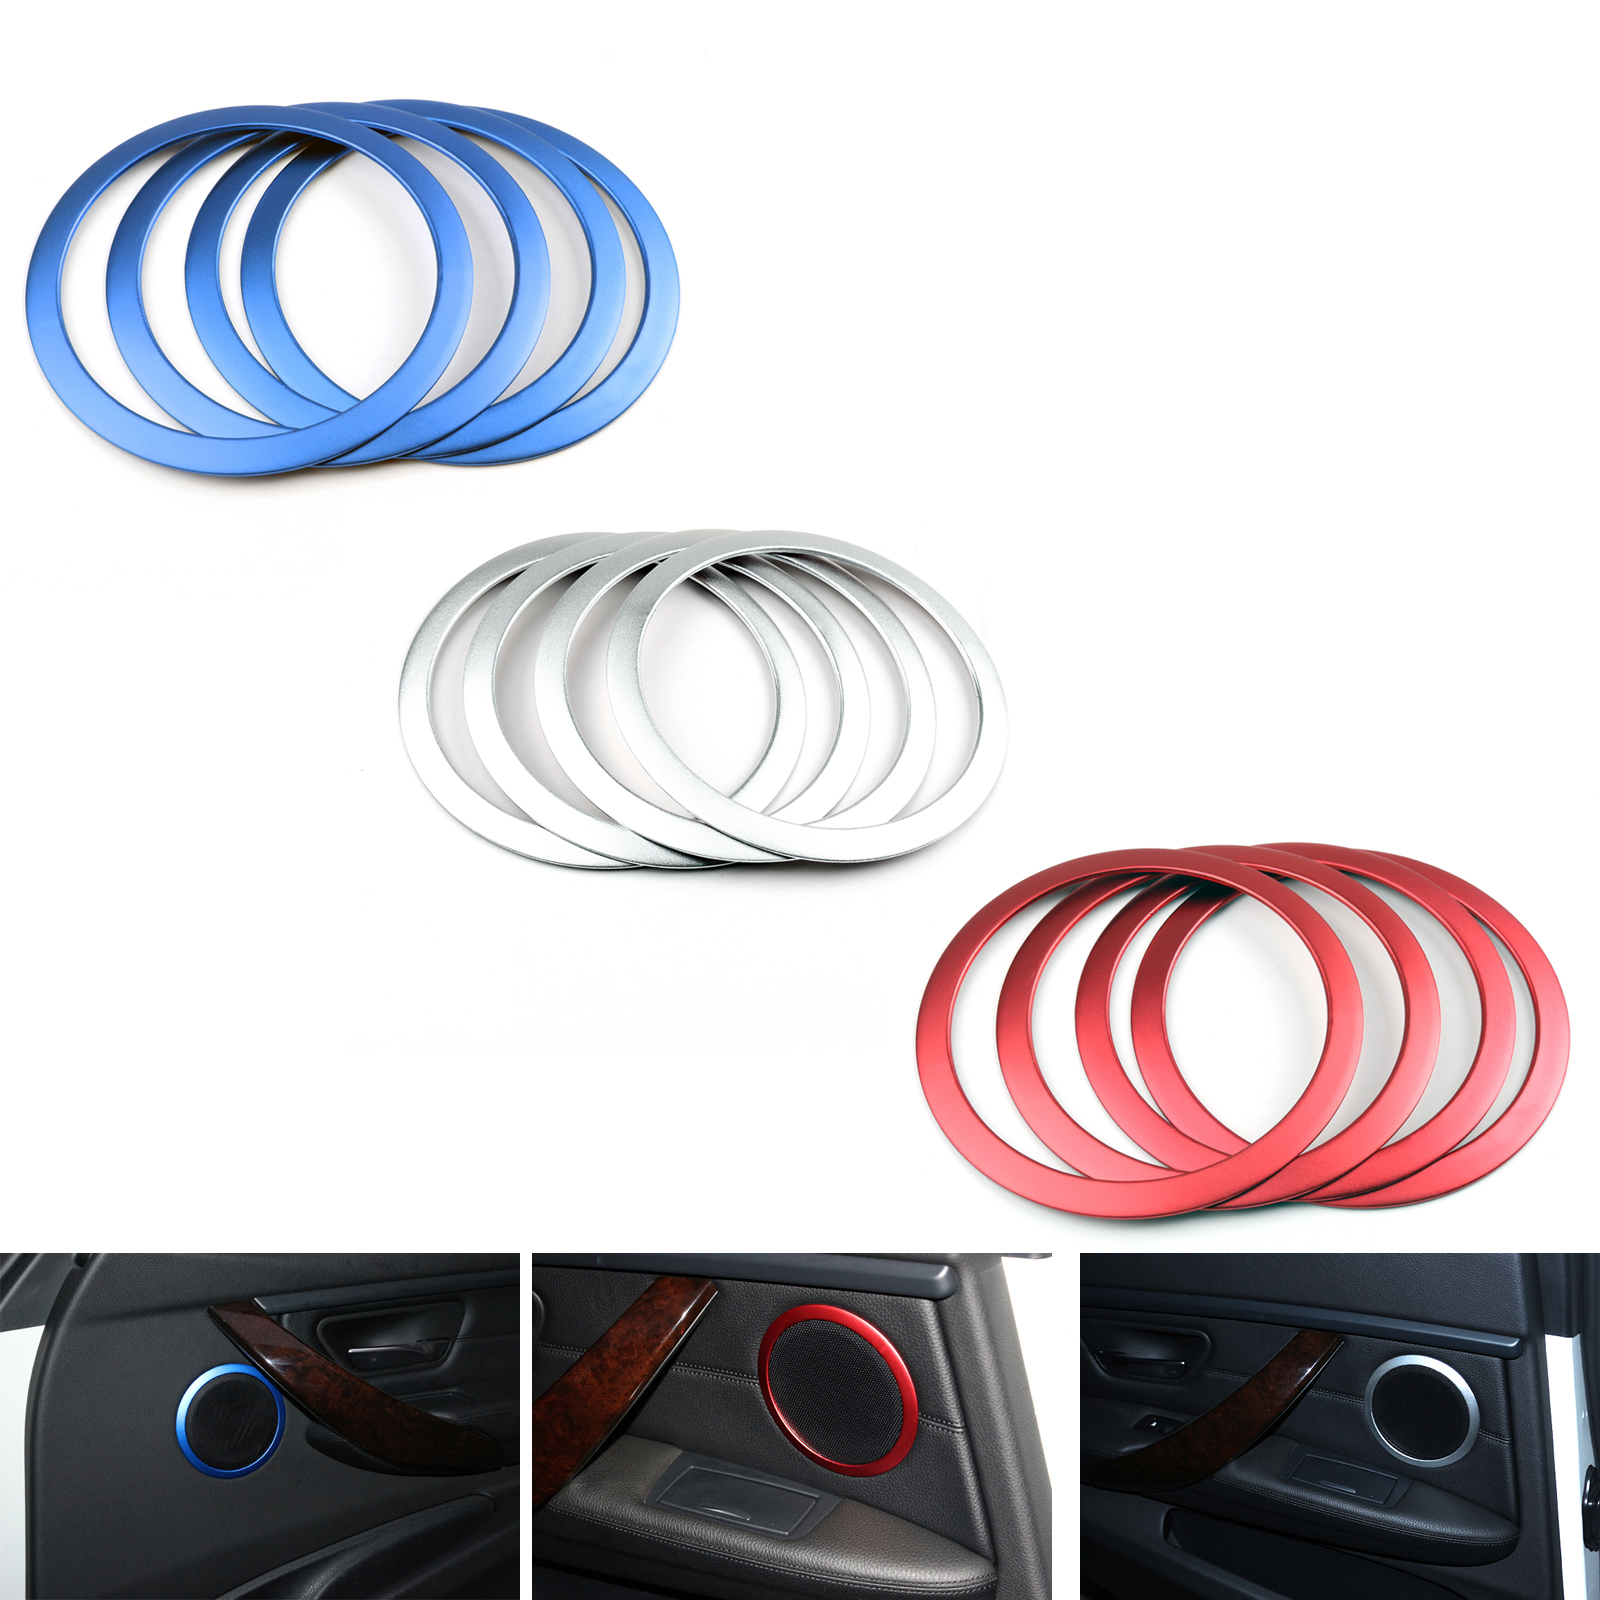 Material: Made of high quality metal with color Finished. Not a Plastic! Item included: 4 pieces/1 set. Compatible: 2012-Present F30 3 Series 4D Sedan ...